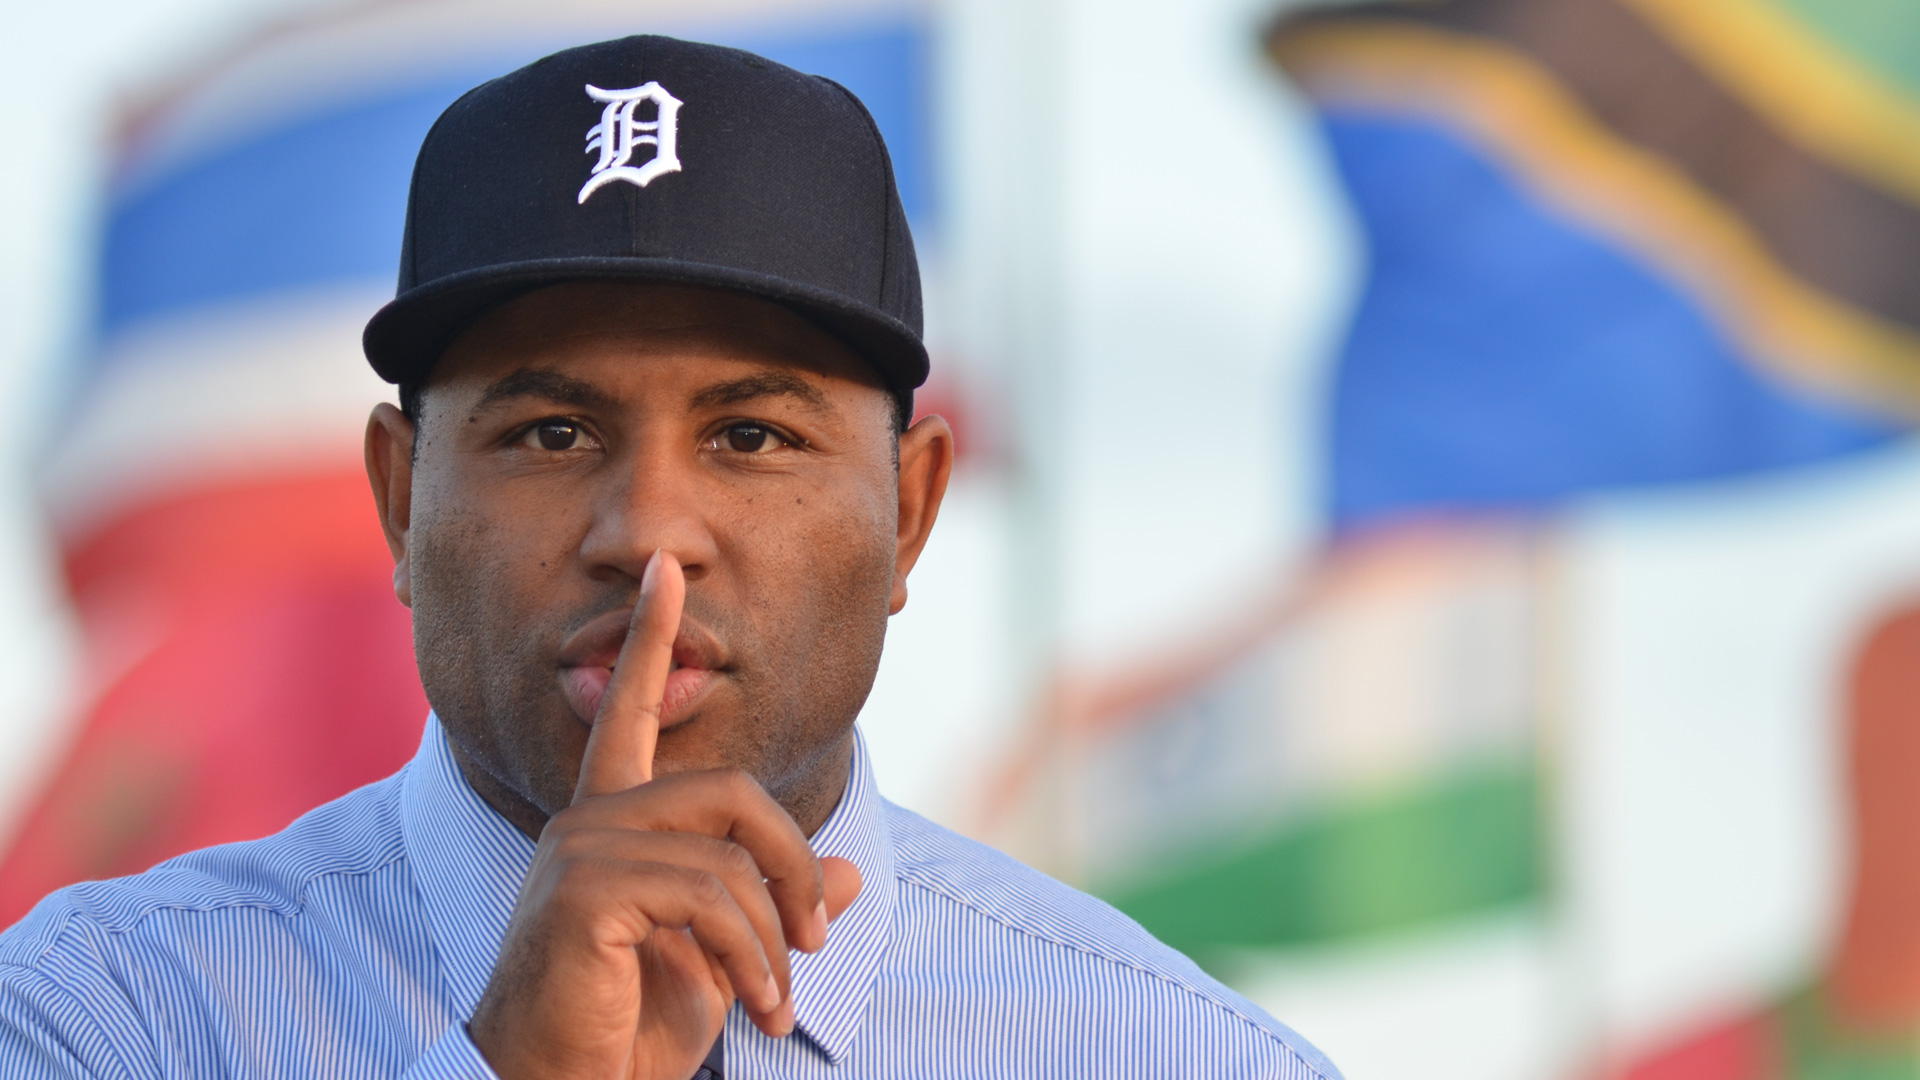 Powerful Eric Thomas Quotes